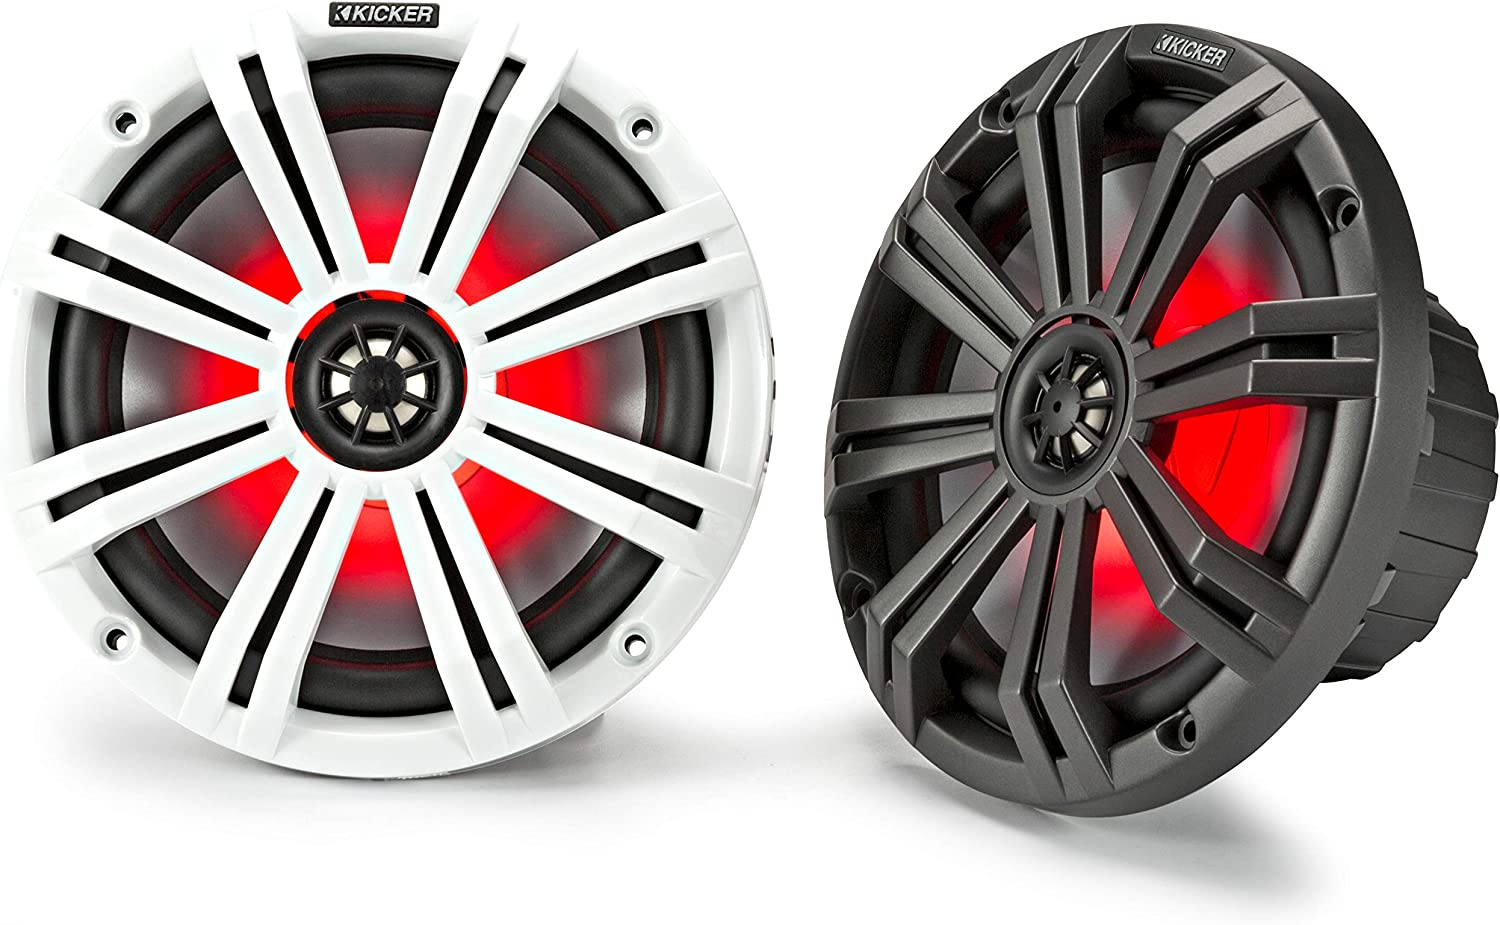 Kicker 45KM84L 8-Inch Marine Coaxial Boat Speakers, Black and White Grilles, Red LED Lights, 4-Ohm, 300 Max Watts, Pair